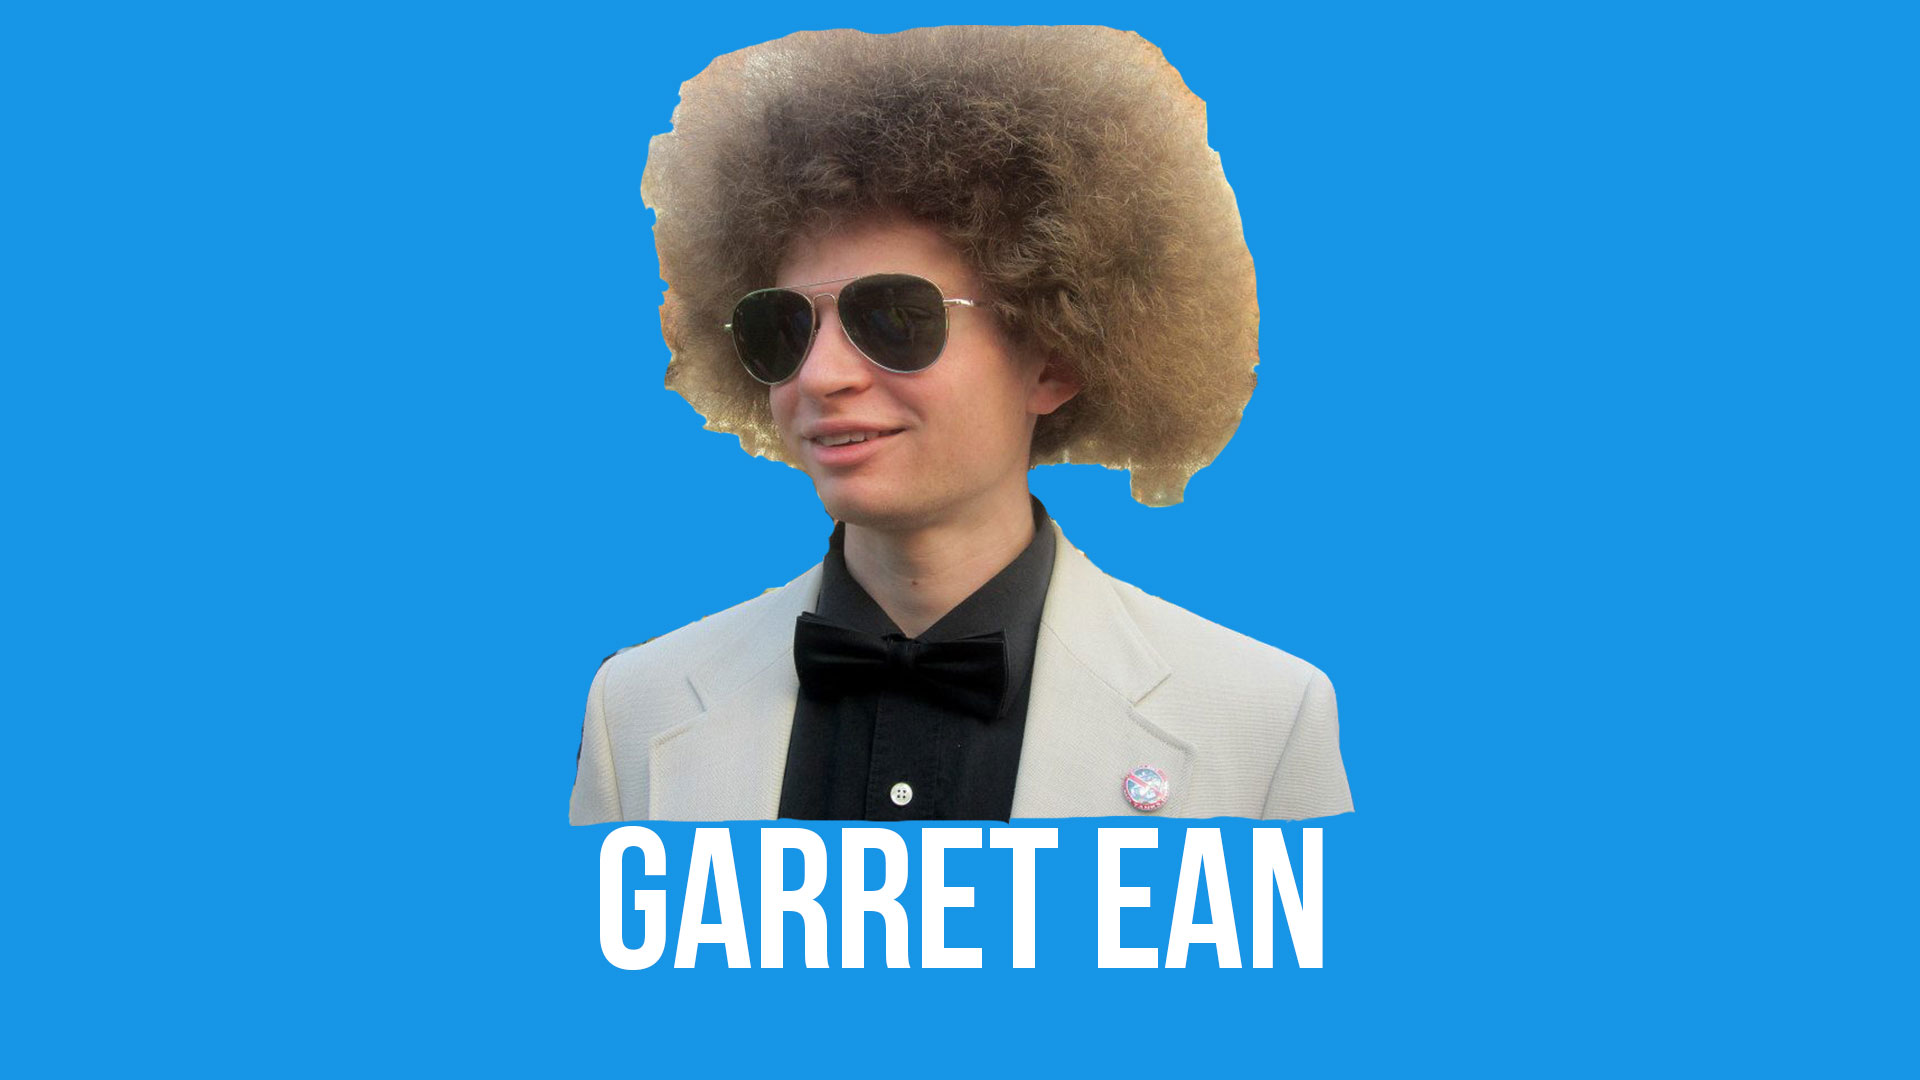 Garret Ean Talks Activism to Peace News Now